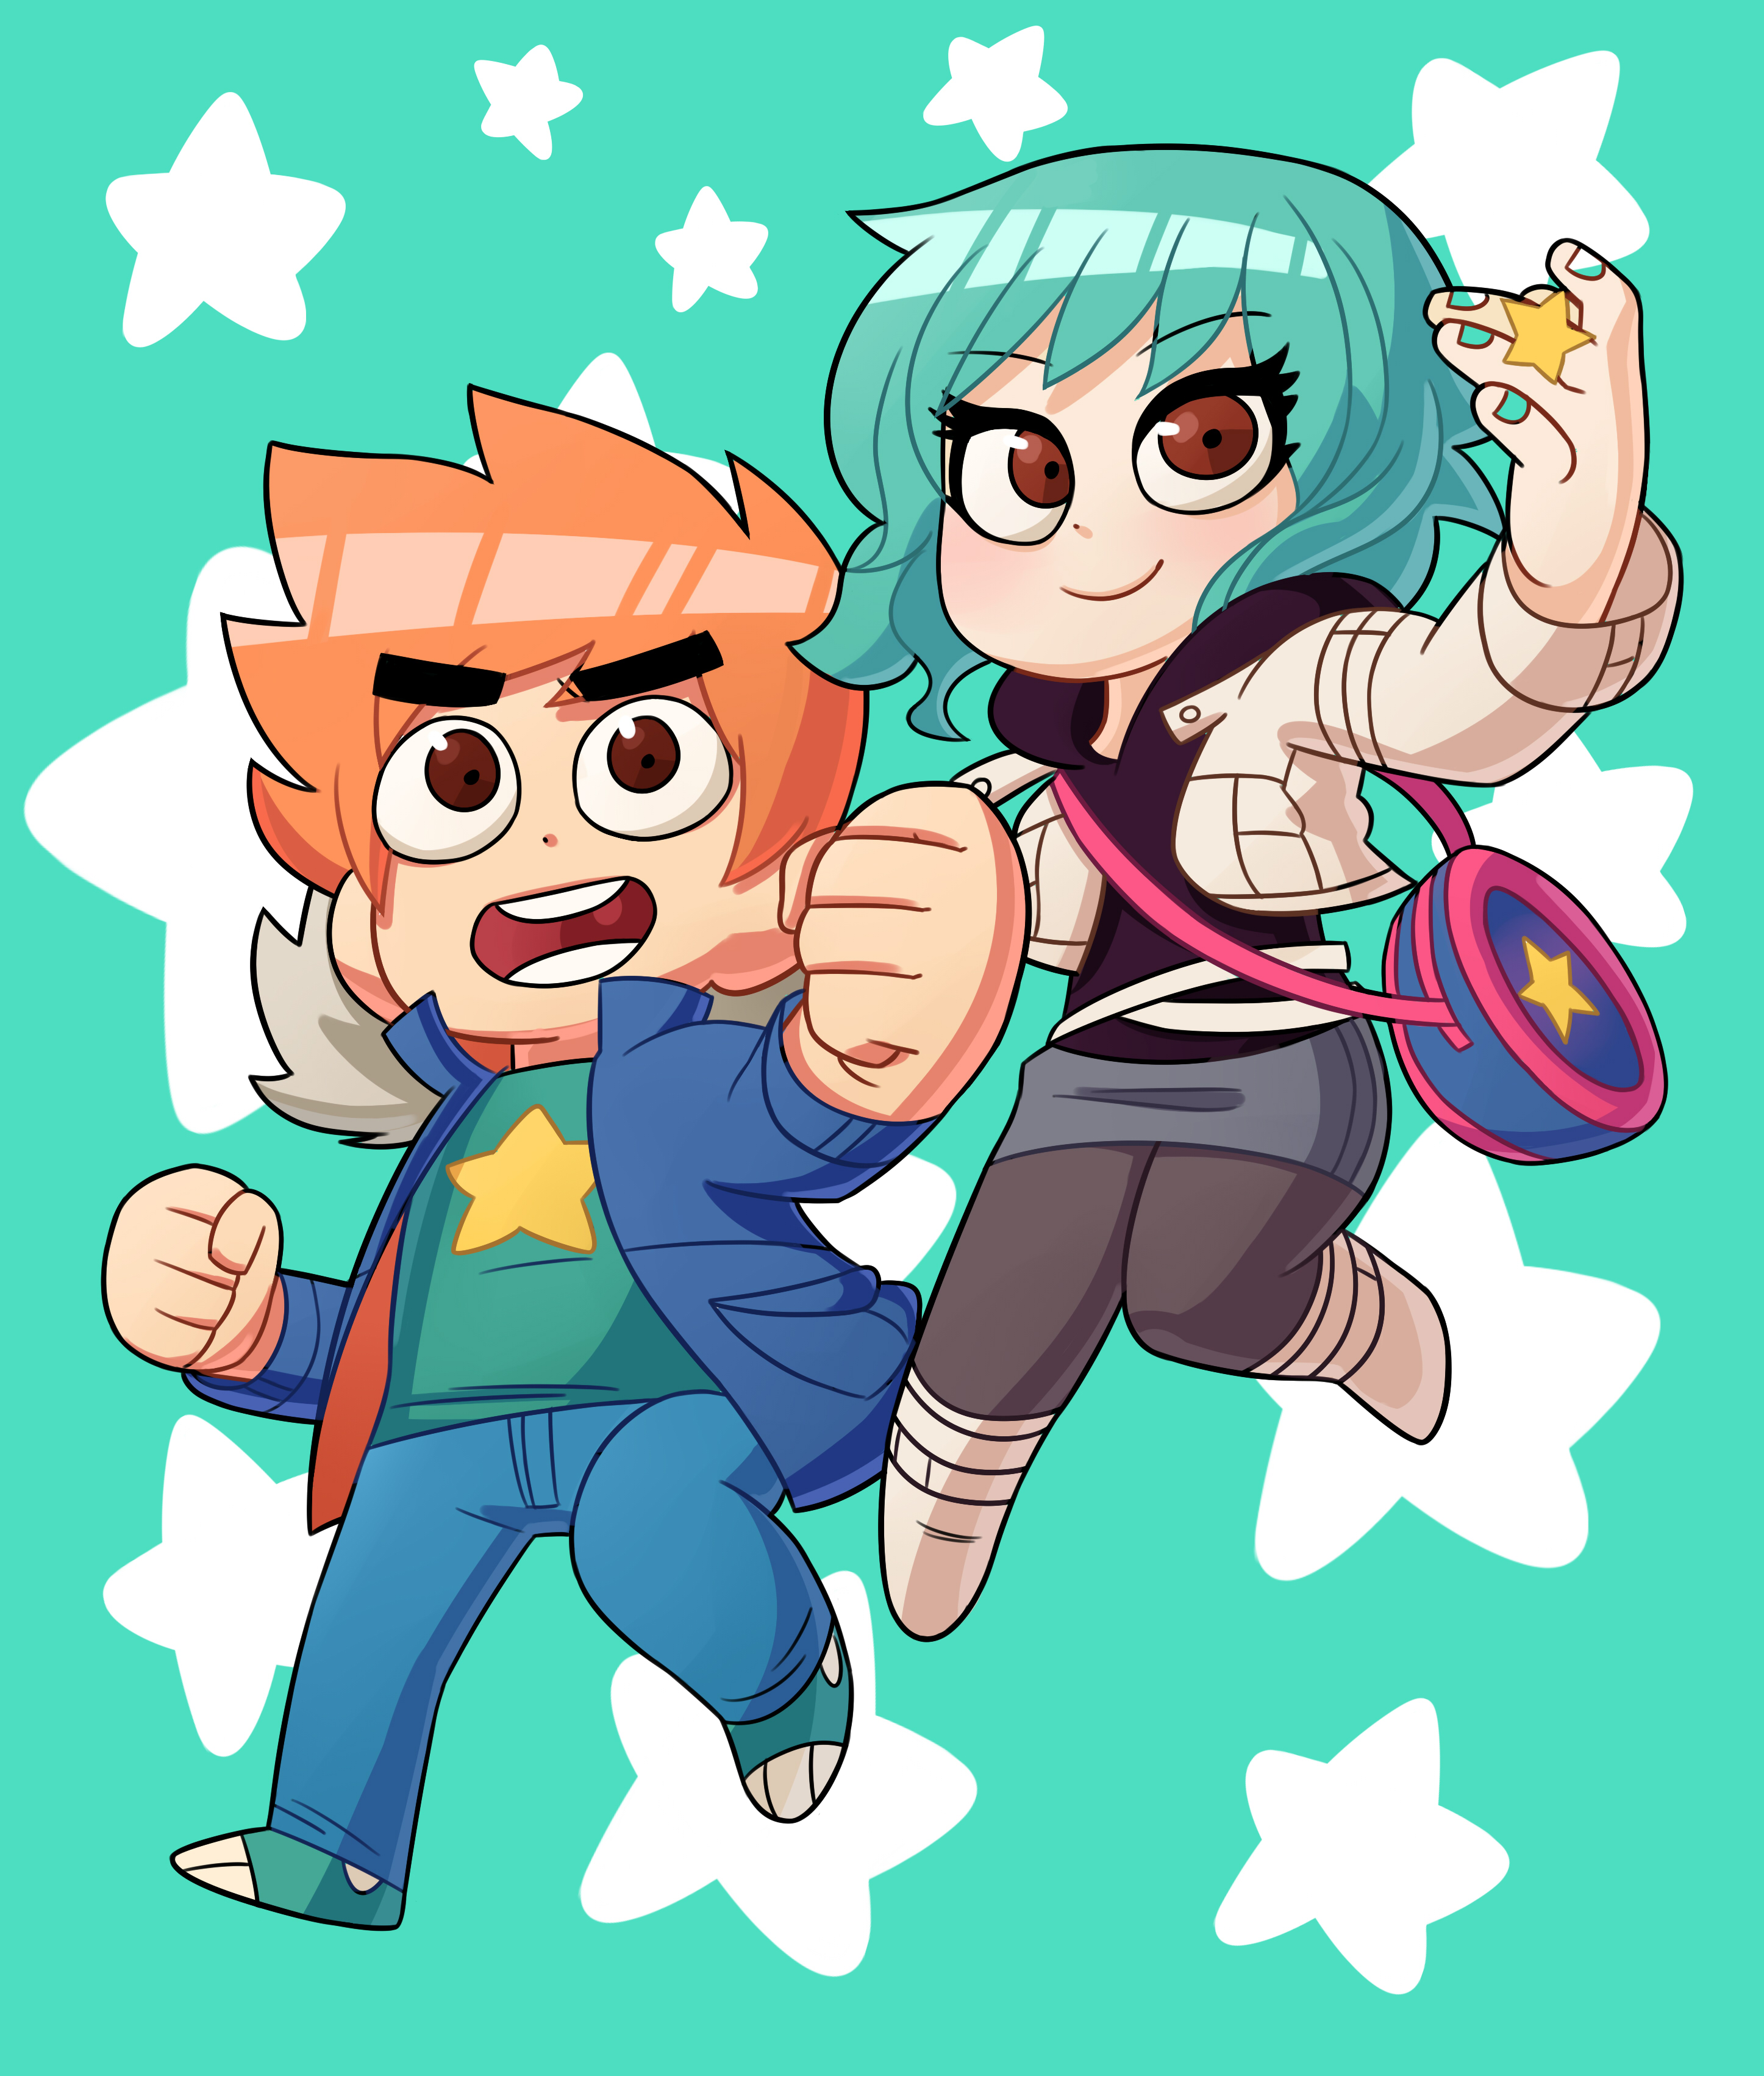 Scott and ramona chibi